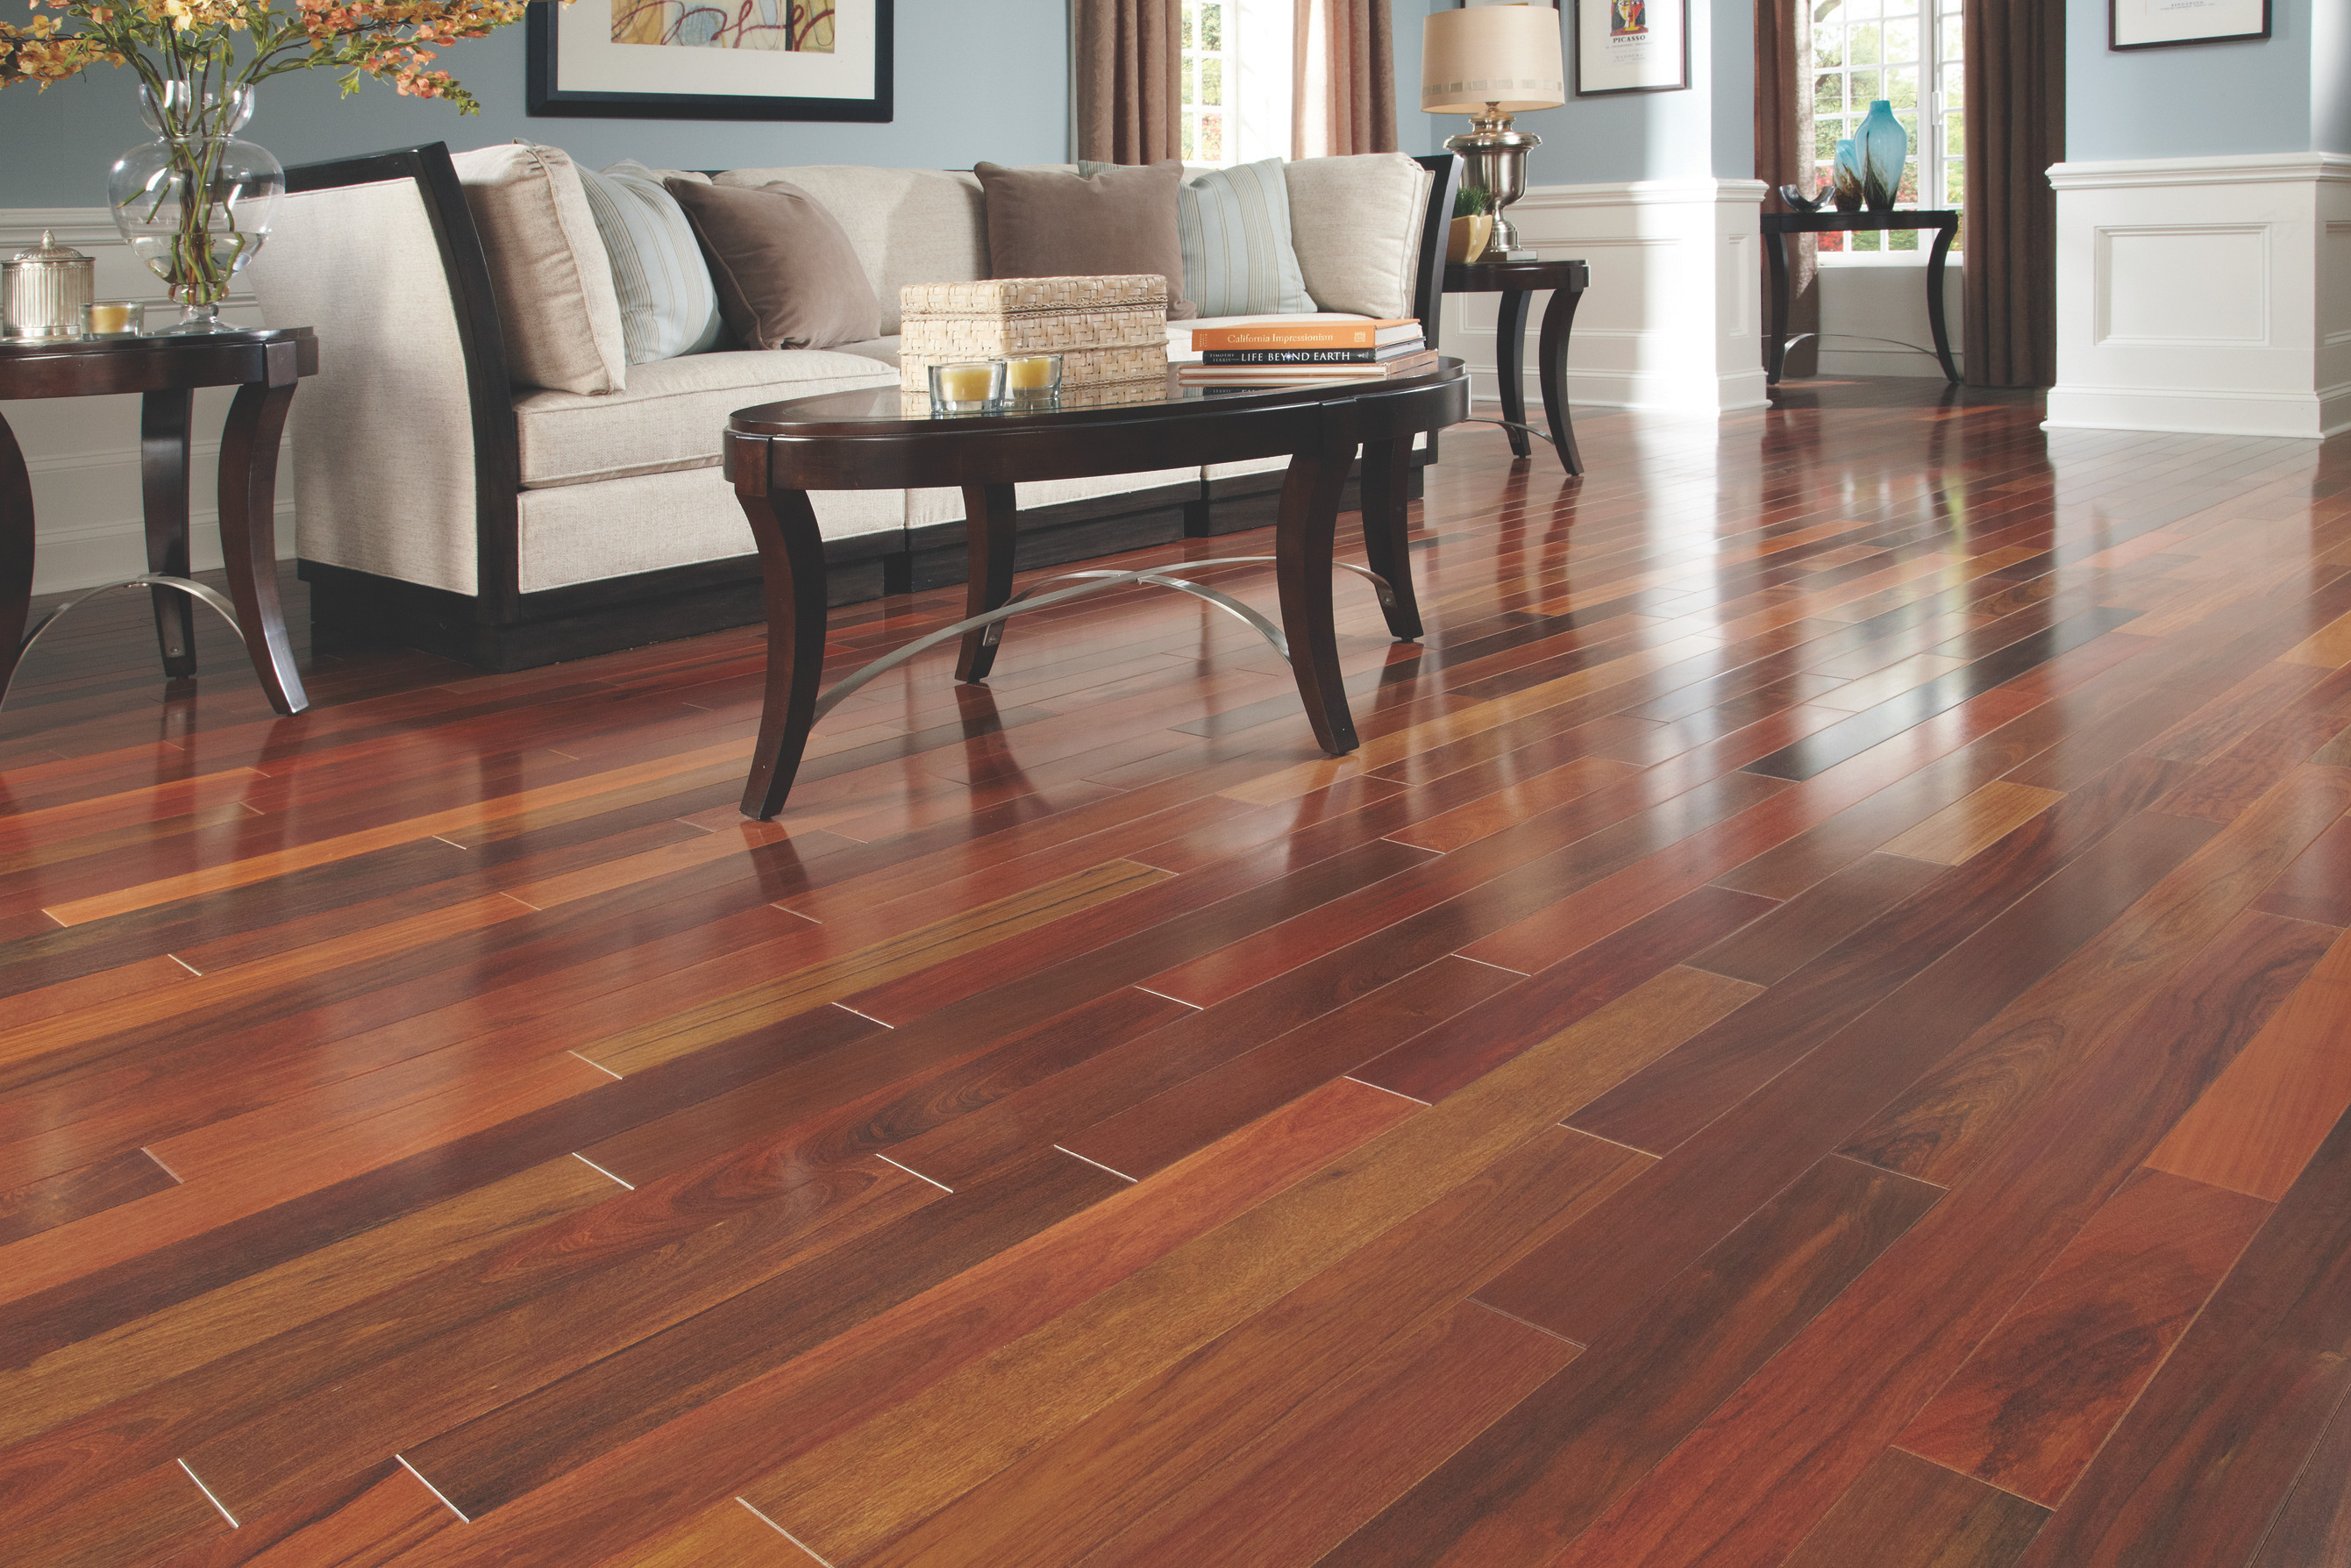 lumber liquidators hardwood flooring of breathtaking lumber liquidators hardwood flooring beautiful floors regarding breathtaking lumber liquidator hardwood flooring brazilian koa installation floor for less cost video formaldehyde recall cleaner